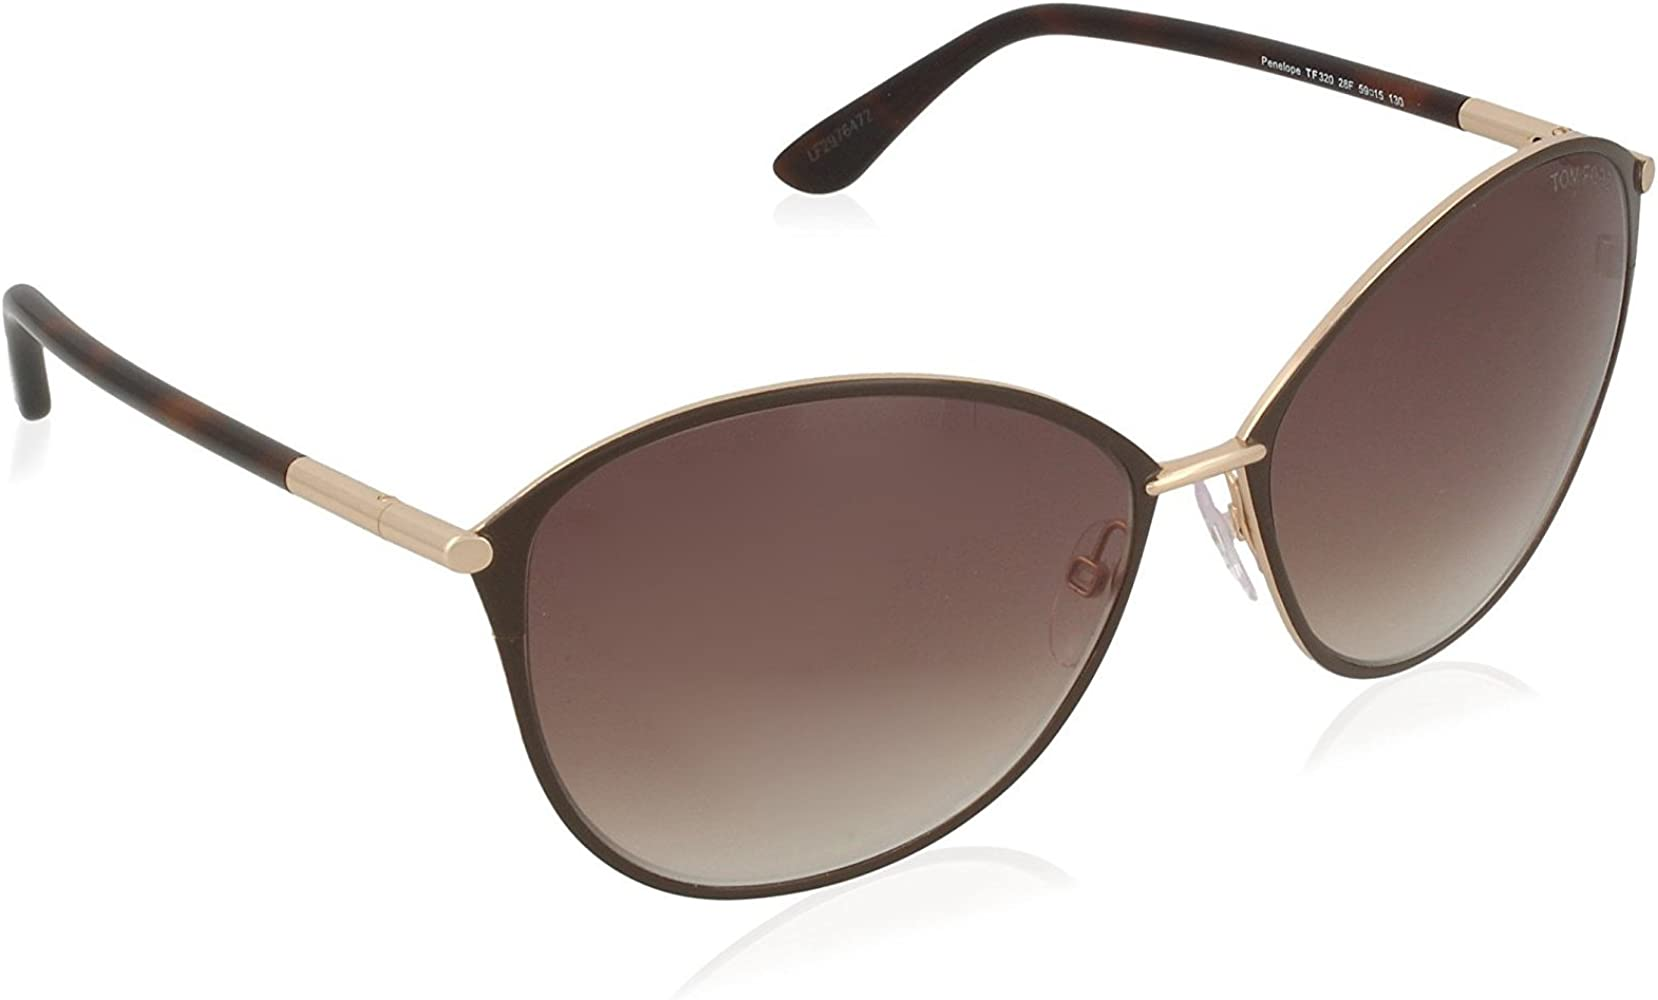 Amazon.com: Gafas de sol Tom Ford FT 0320 28F brillante oro ...